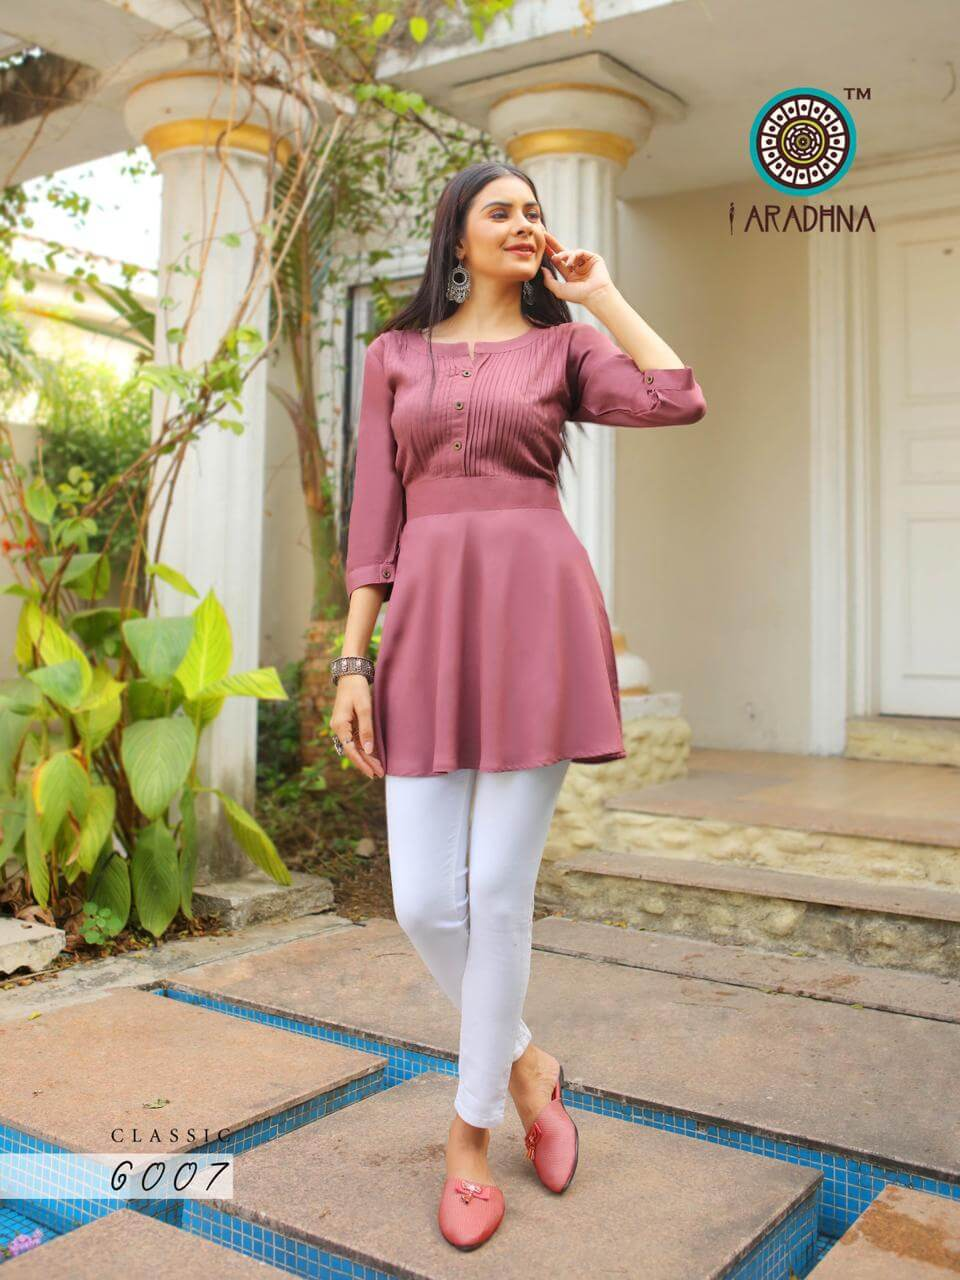 Aradhana Classic 6 collection 1